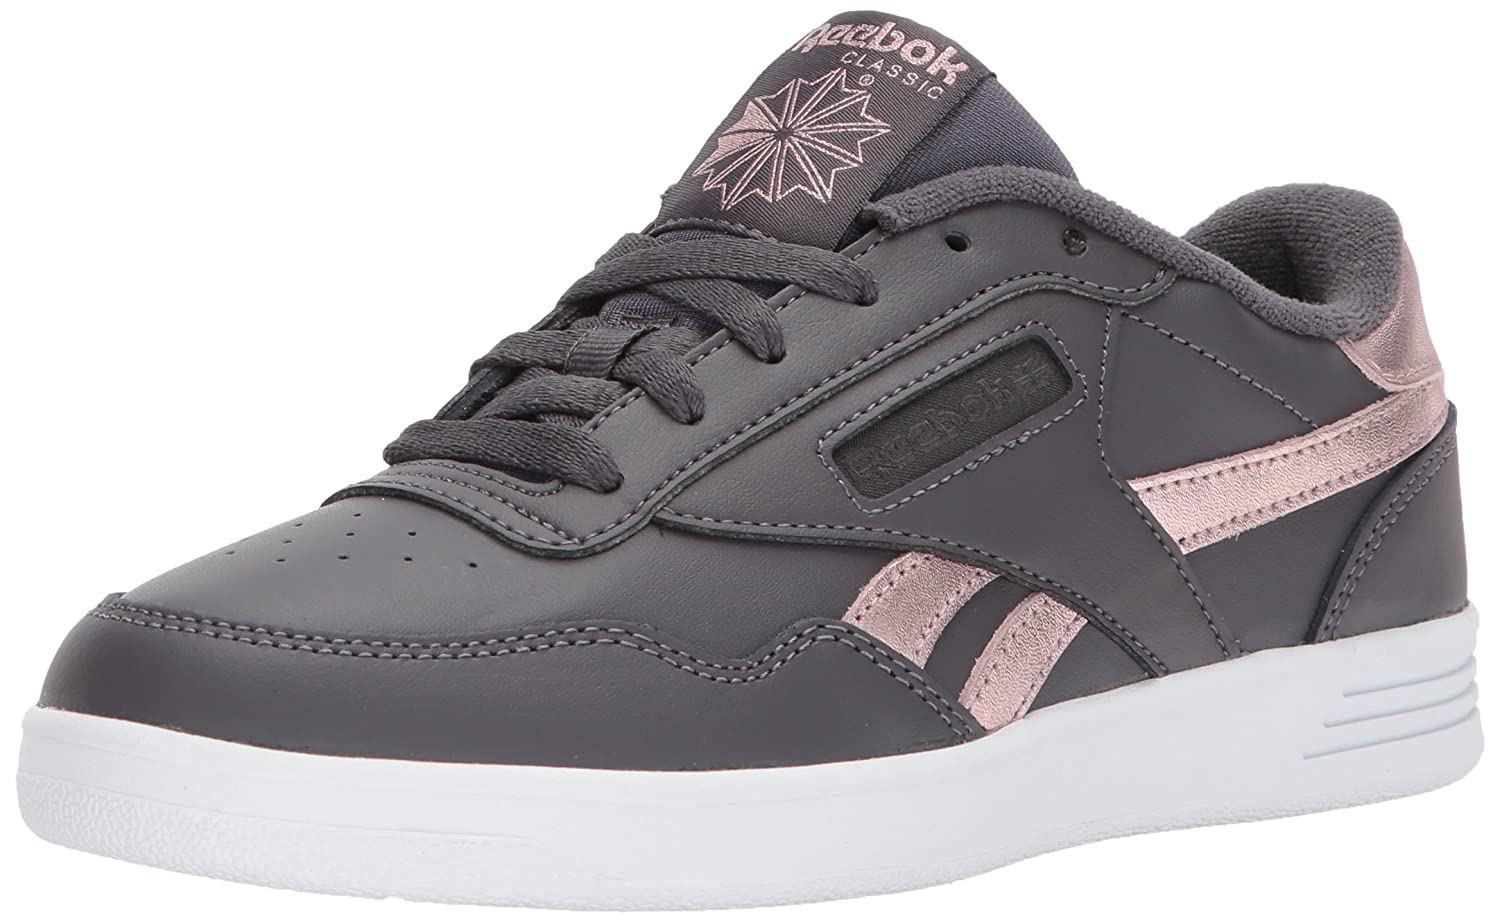 Reebok Women's Club MEMT Sneaker B06ZZ4MZBZ 10 B(M) US|Us-ash Grey/Rose Gold/White